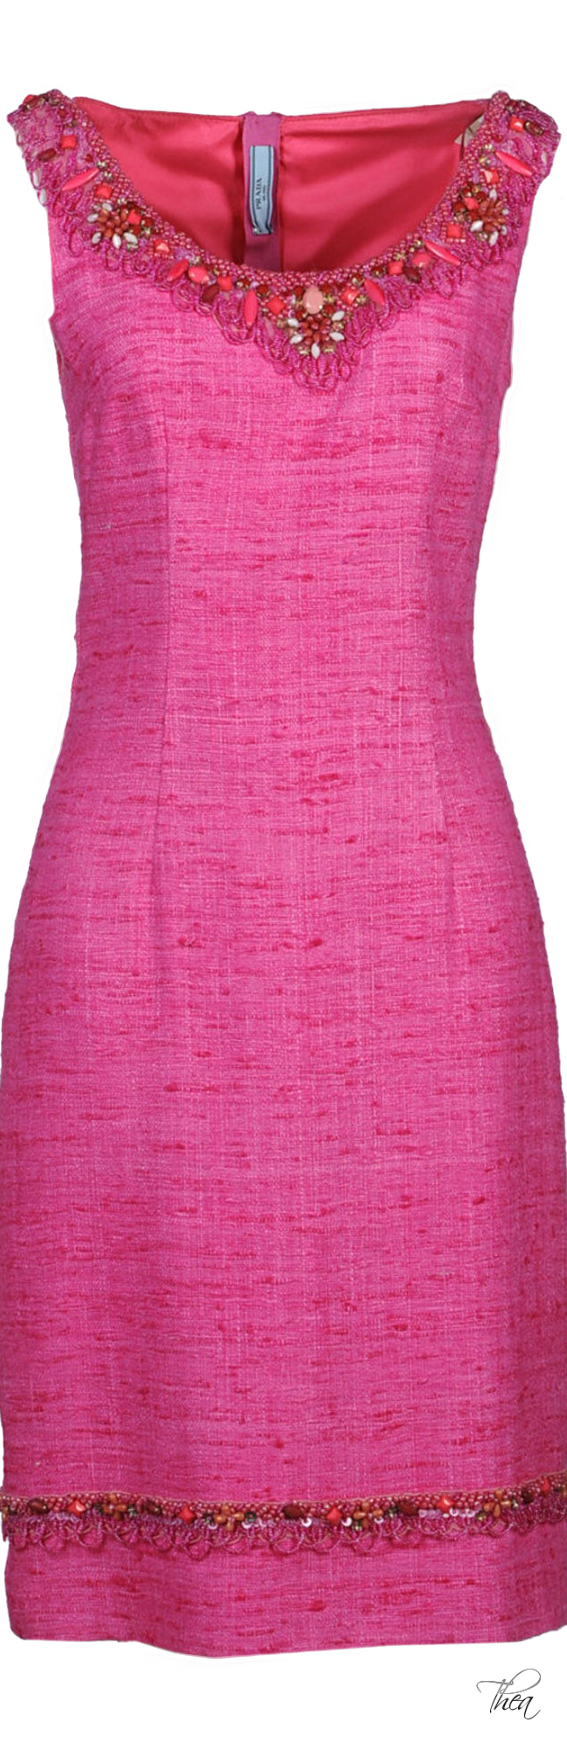 Prada ○ Pink Dress | Moda para mujeres | Pinterest | Vestiditos ...